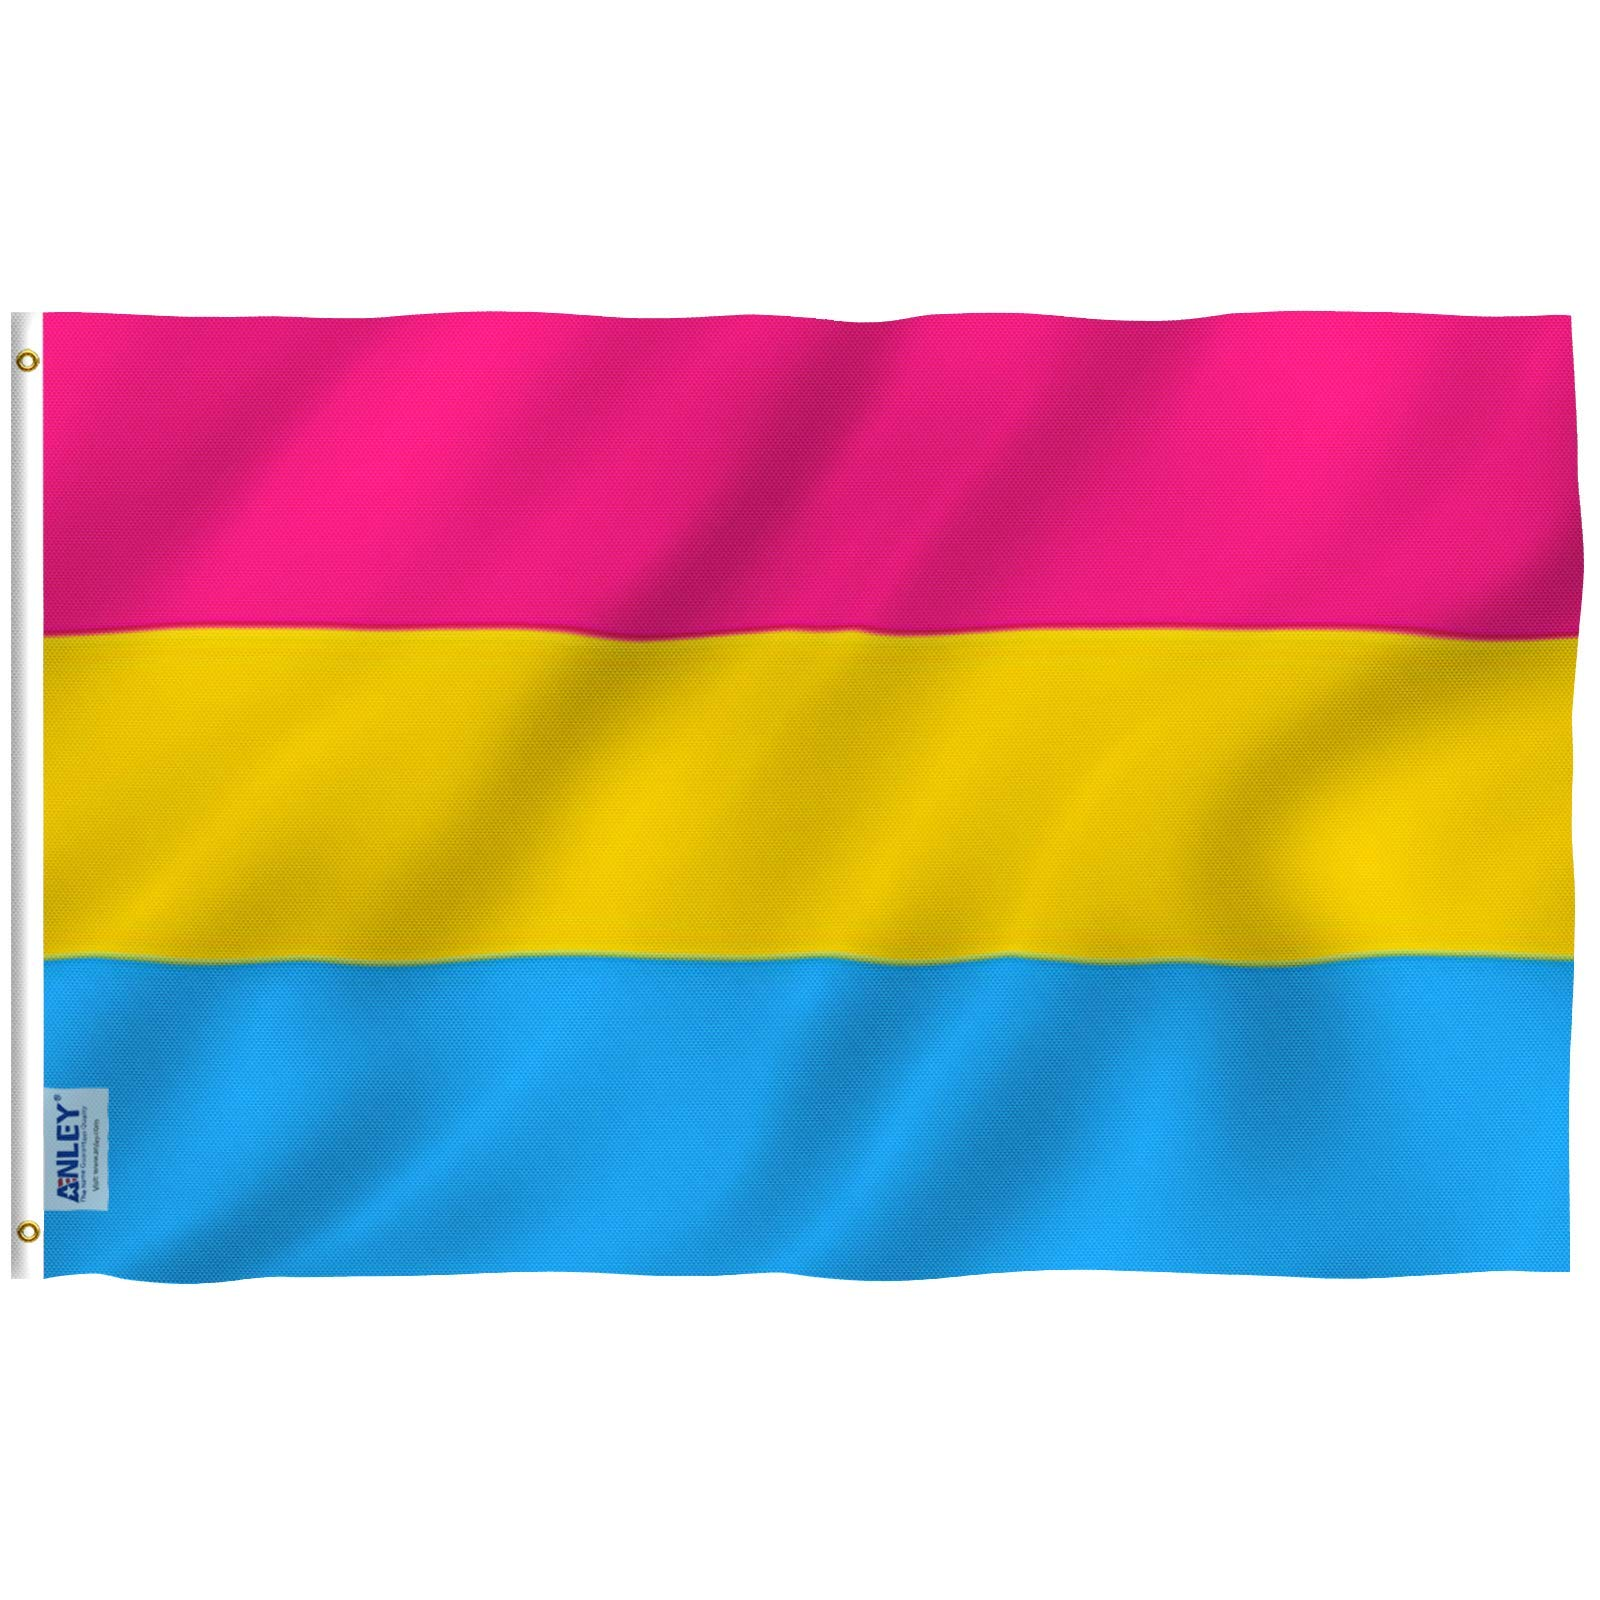 Anley Fly Breeze 3x5 Foot Pansexual Pride Flag - Vivid Color and Fade Proof - Canvas Header and Double Stitched - Omnisexual LGBT Flags Polyester with Brass Grommets 3 X 5 Ft